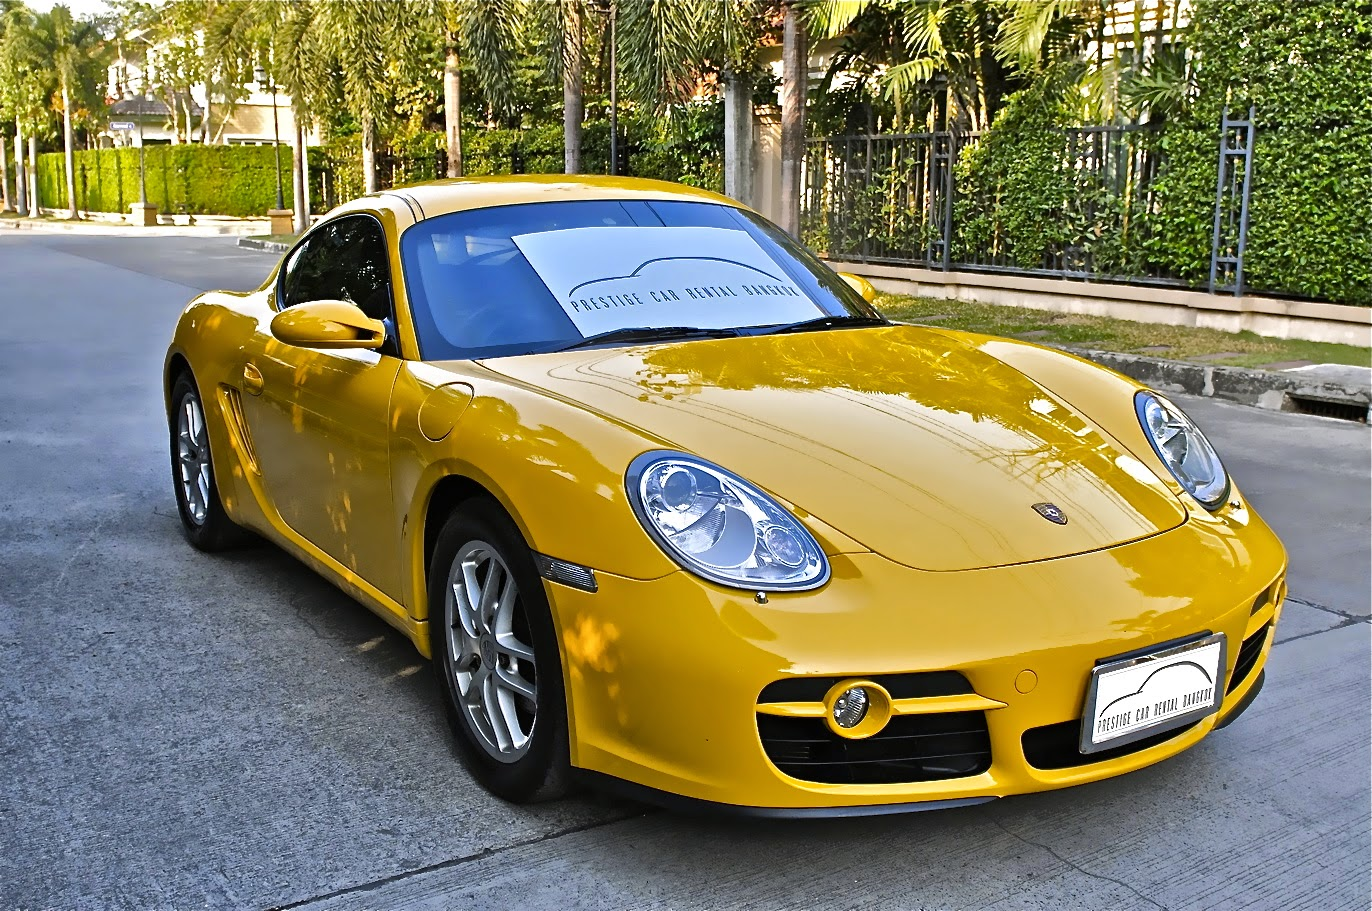 Porsche car rental Bangkok